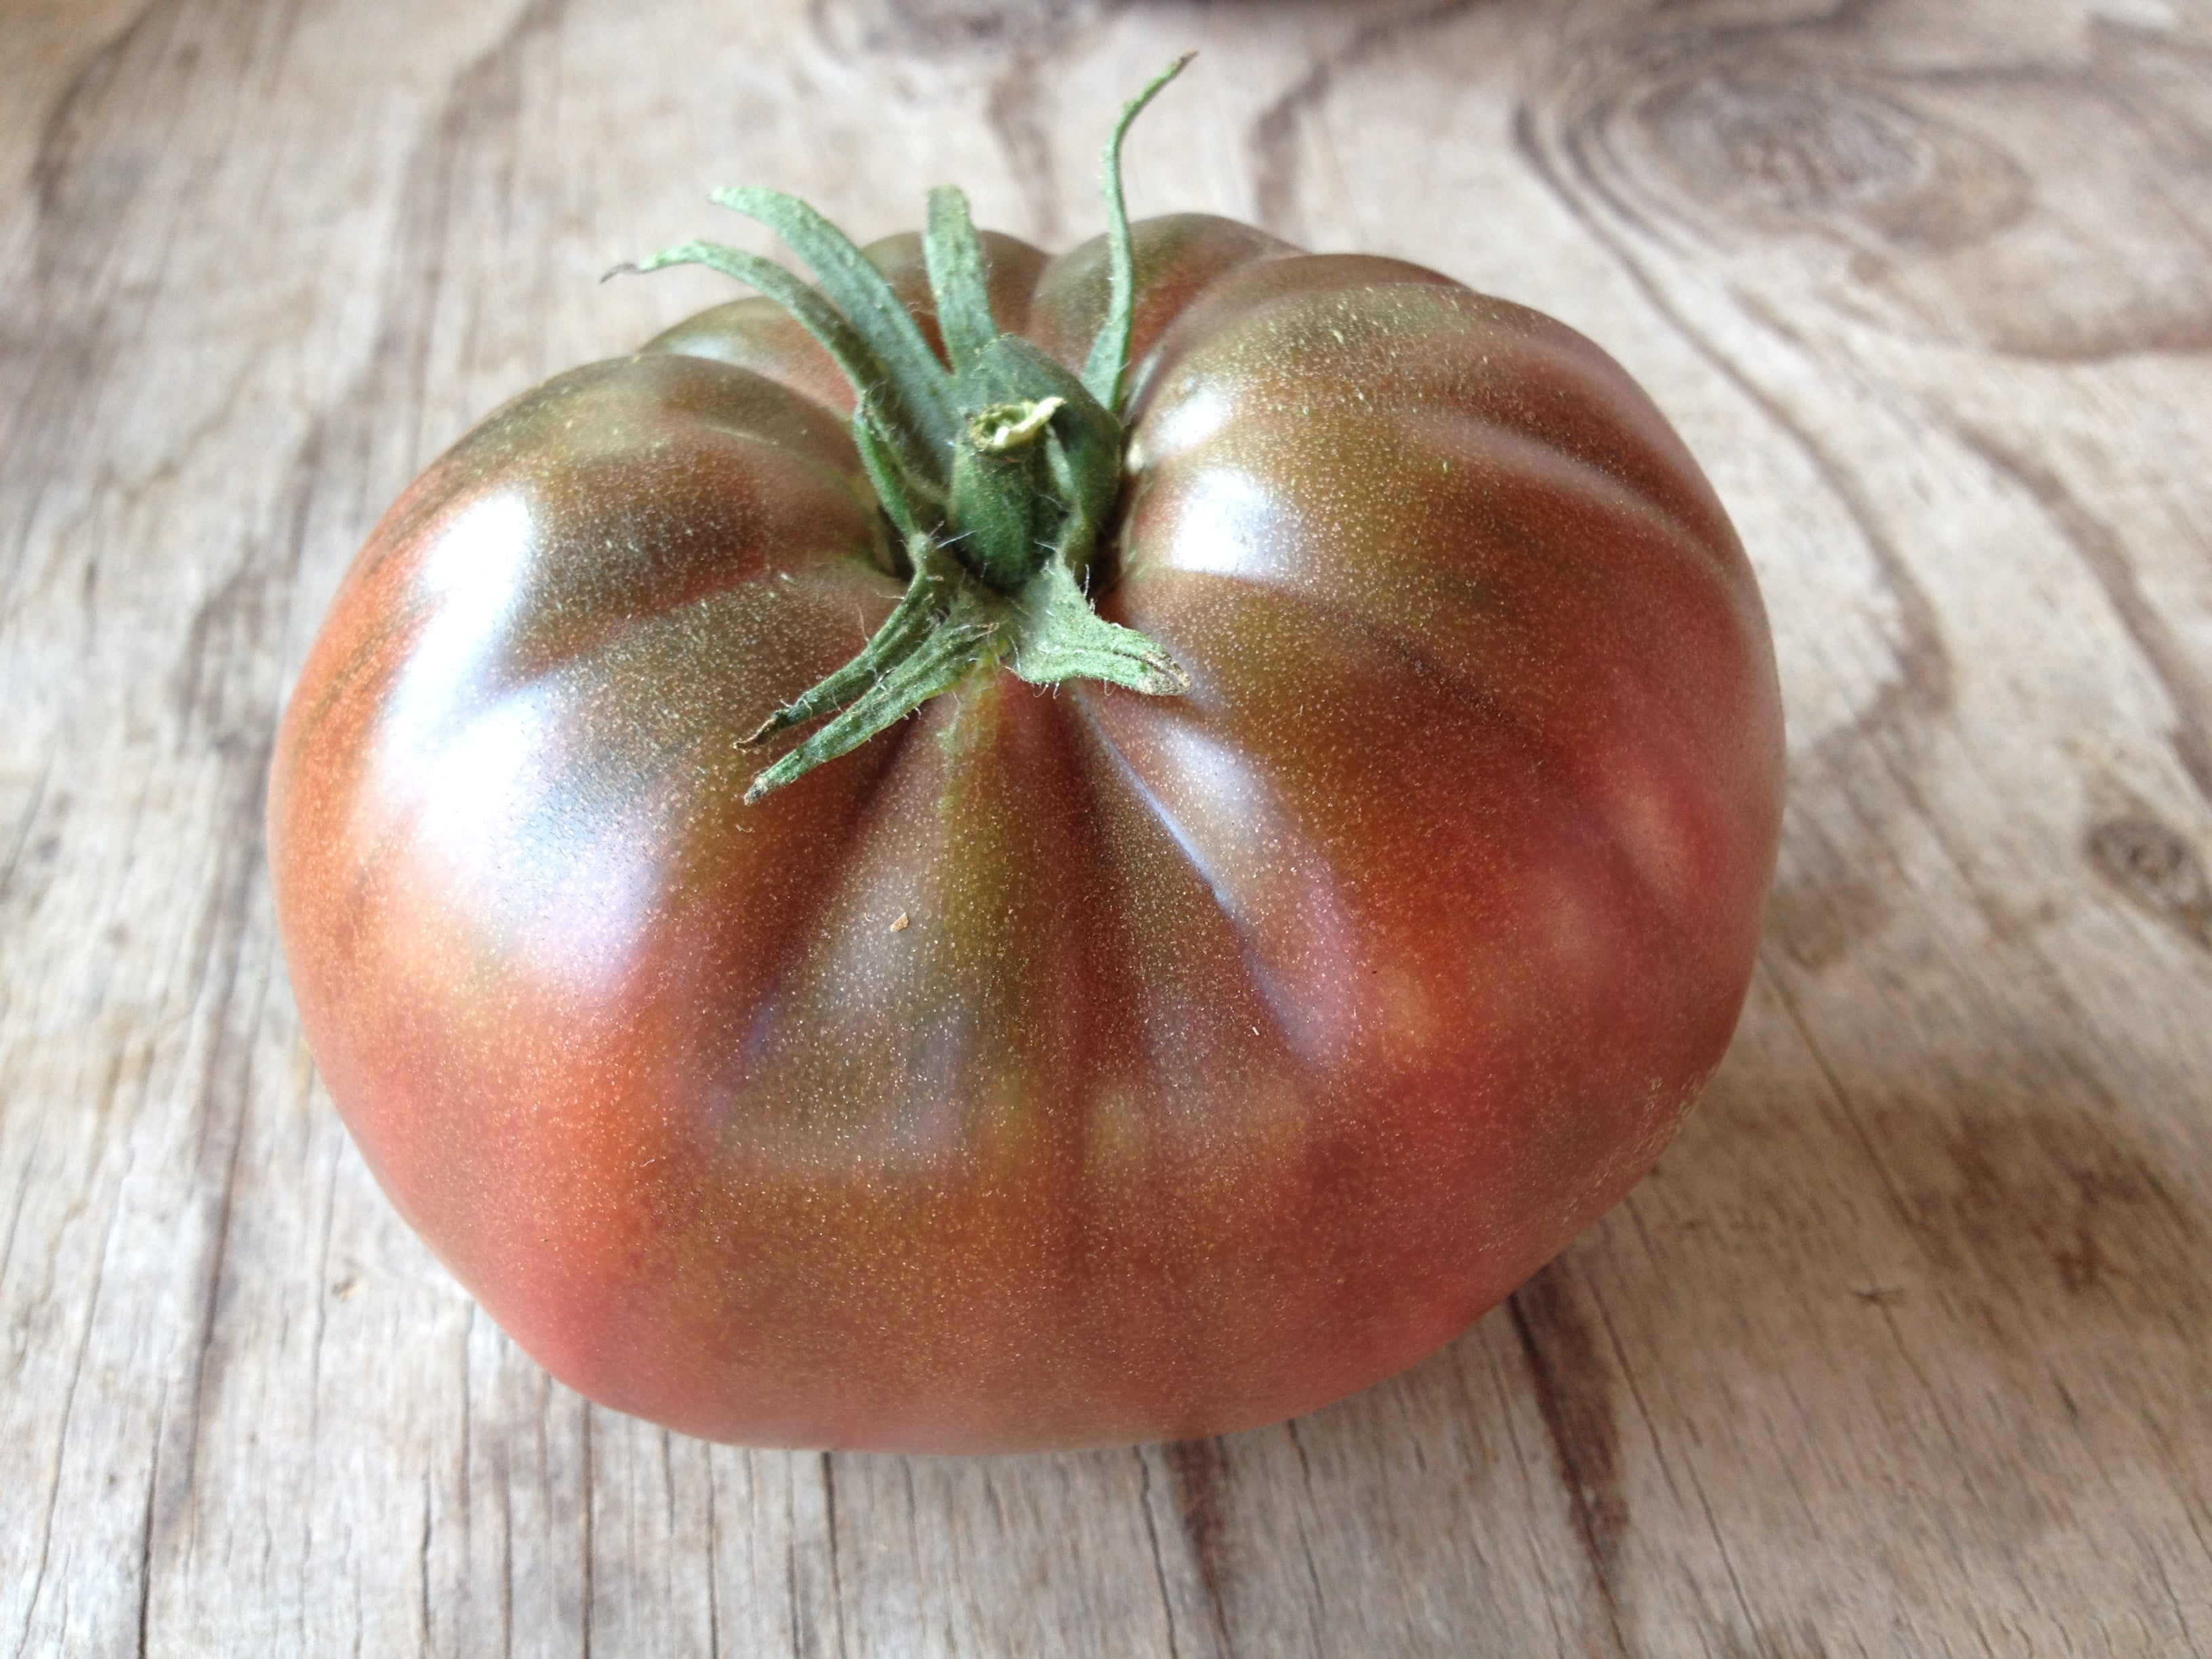 Paul Robeson Black-Tomatoes-Vegetables-Full Circle Seeds